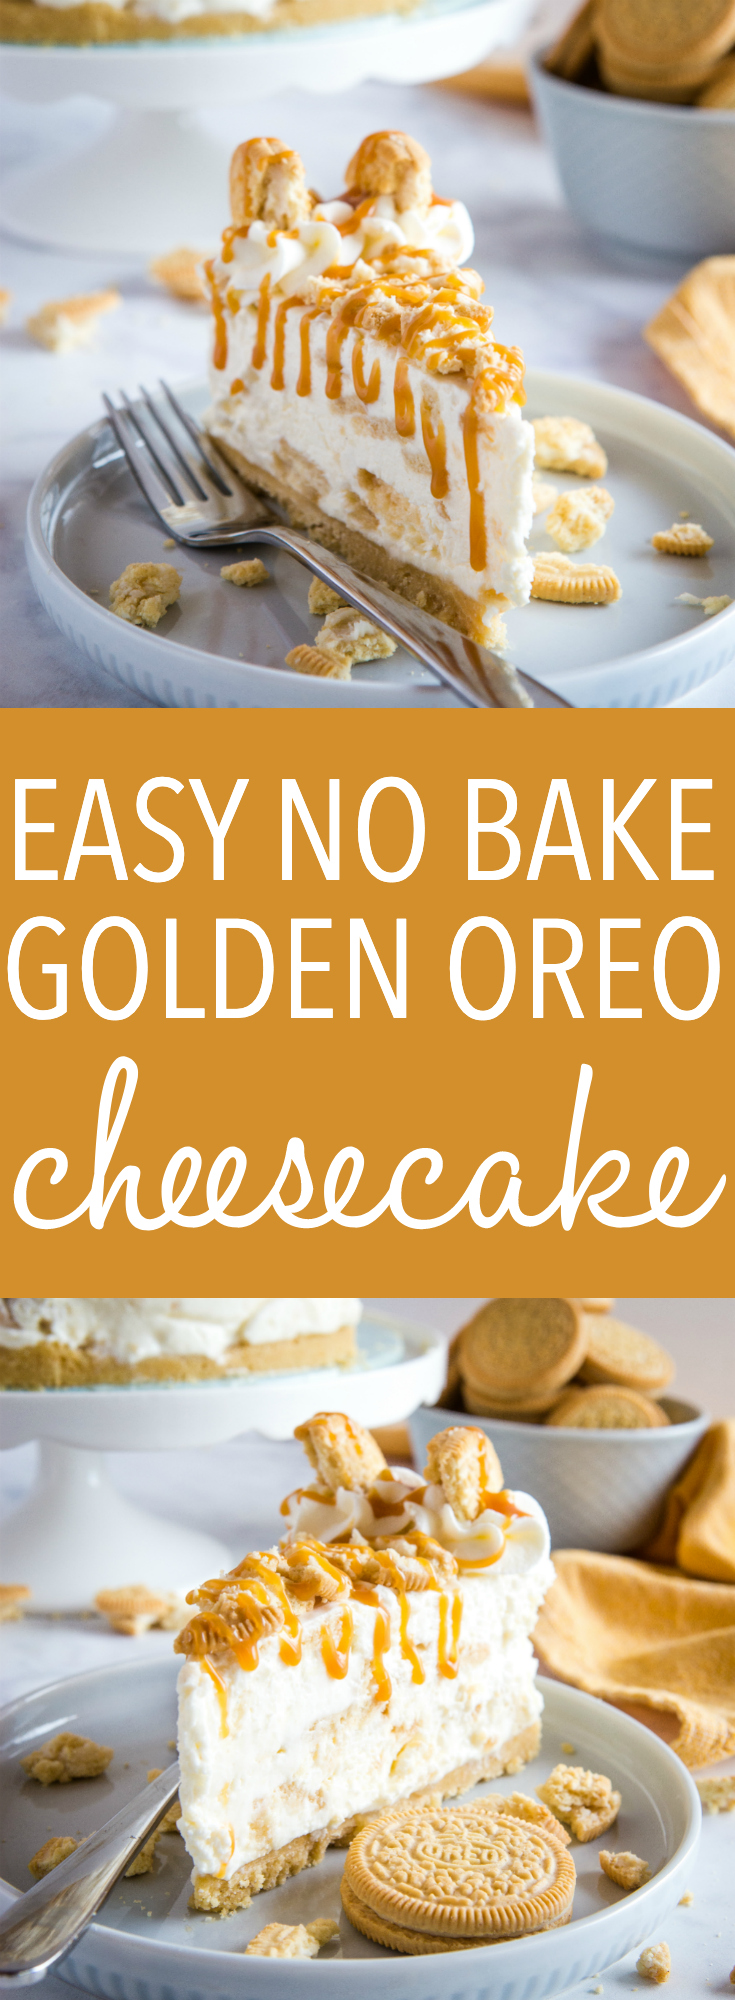 no bake golden oreo cheesecake pinterest